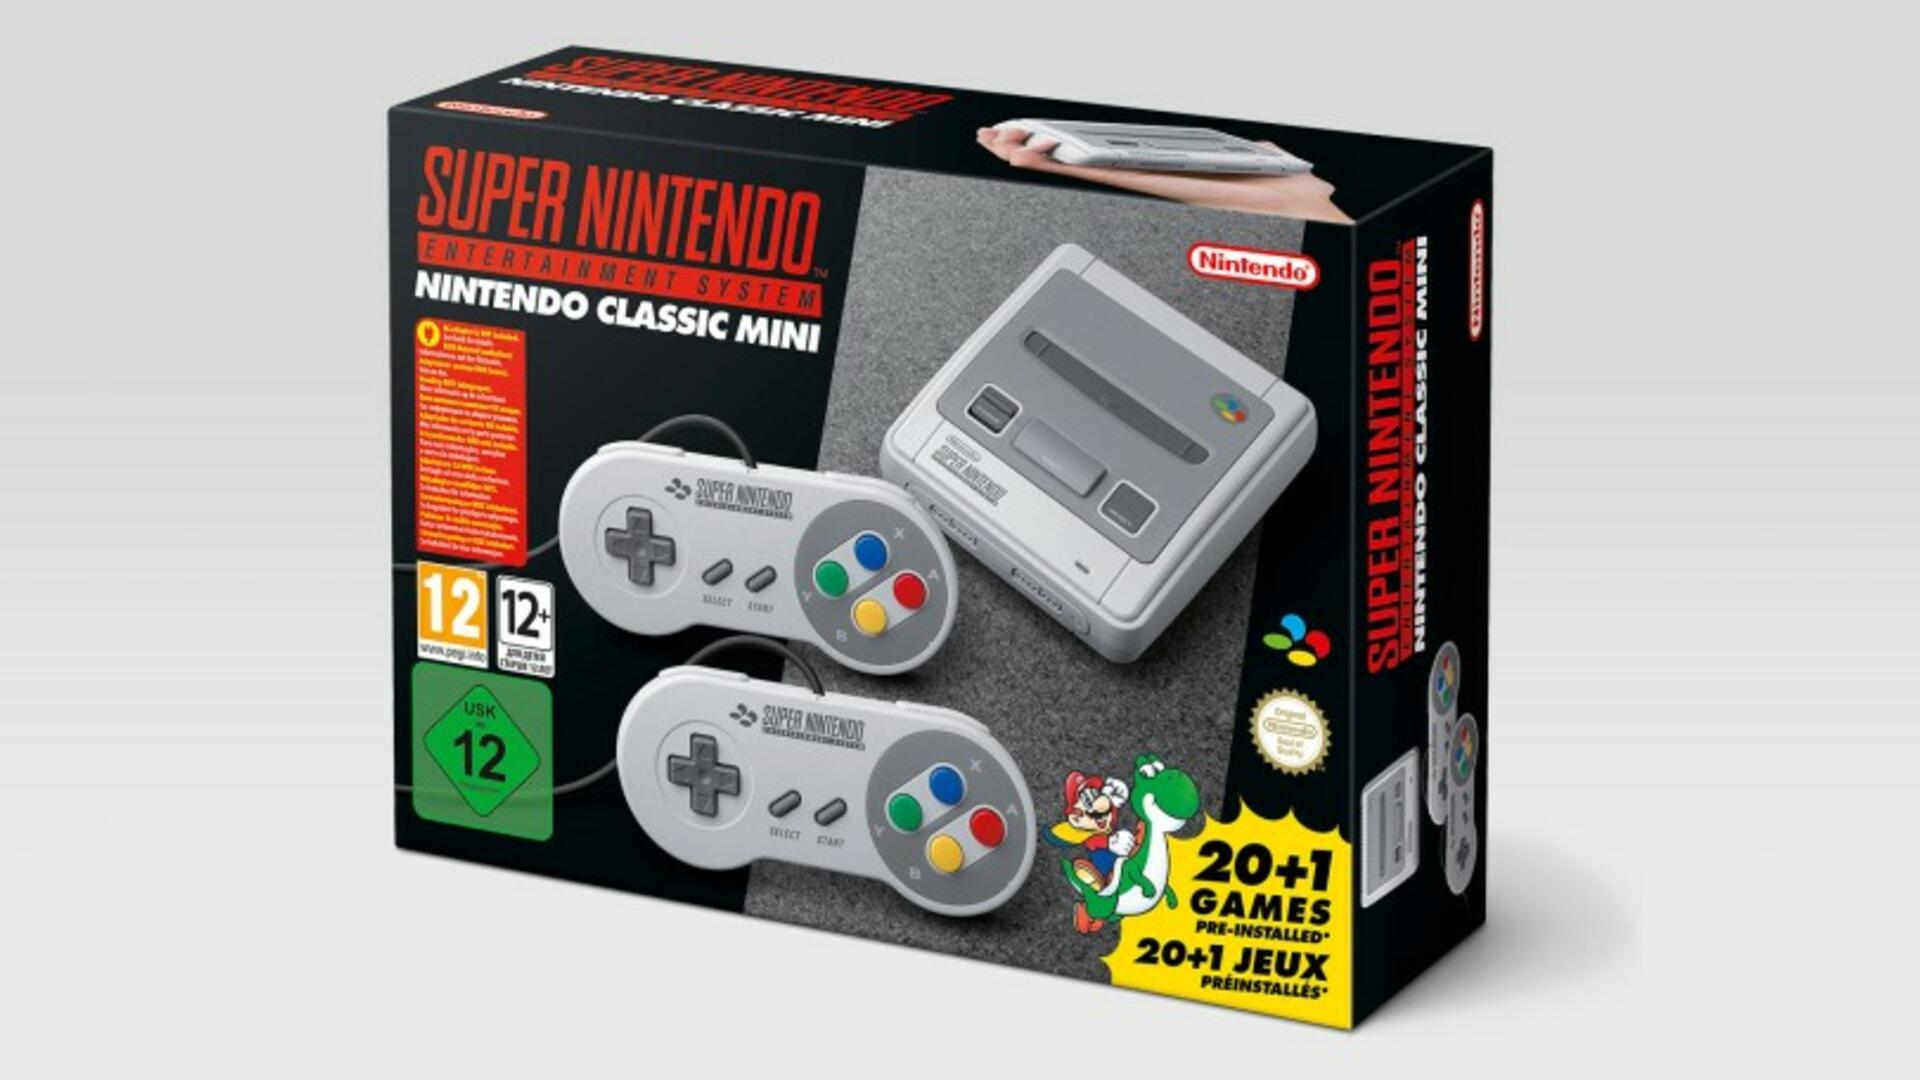 The SNES is Available in Canada, But Not in Quebec